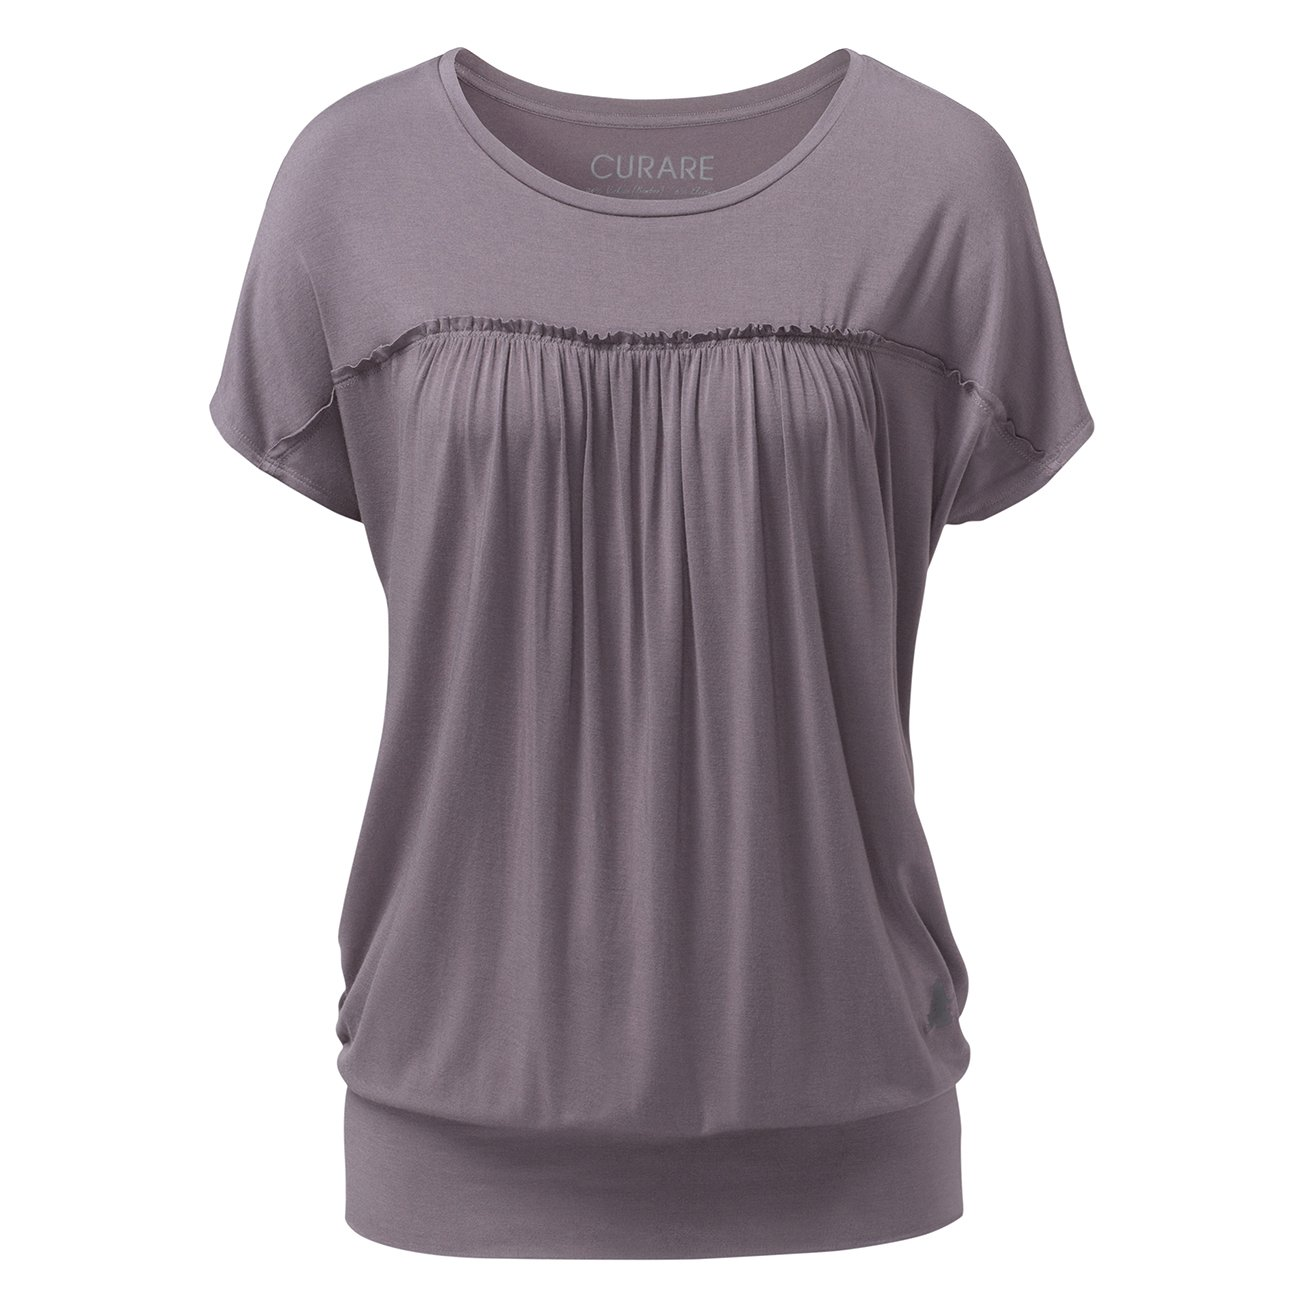 NEW Yoga Camiseta de Curare - New Stone, color Puder/Violett ...